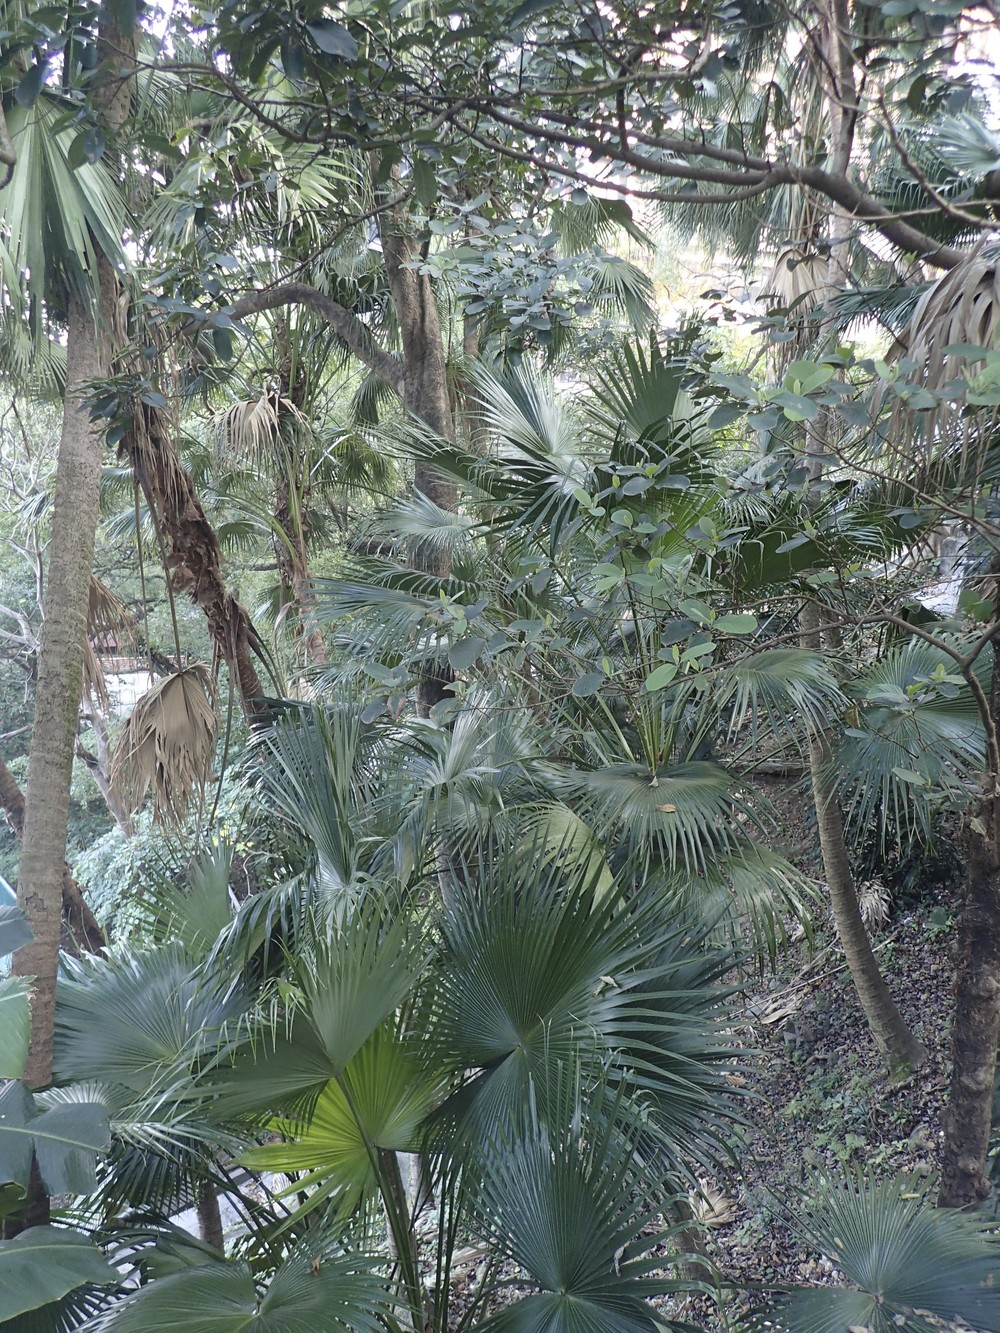 Jungle Book view from Robert Black College Guesthouse.